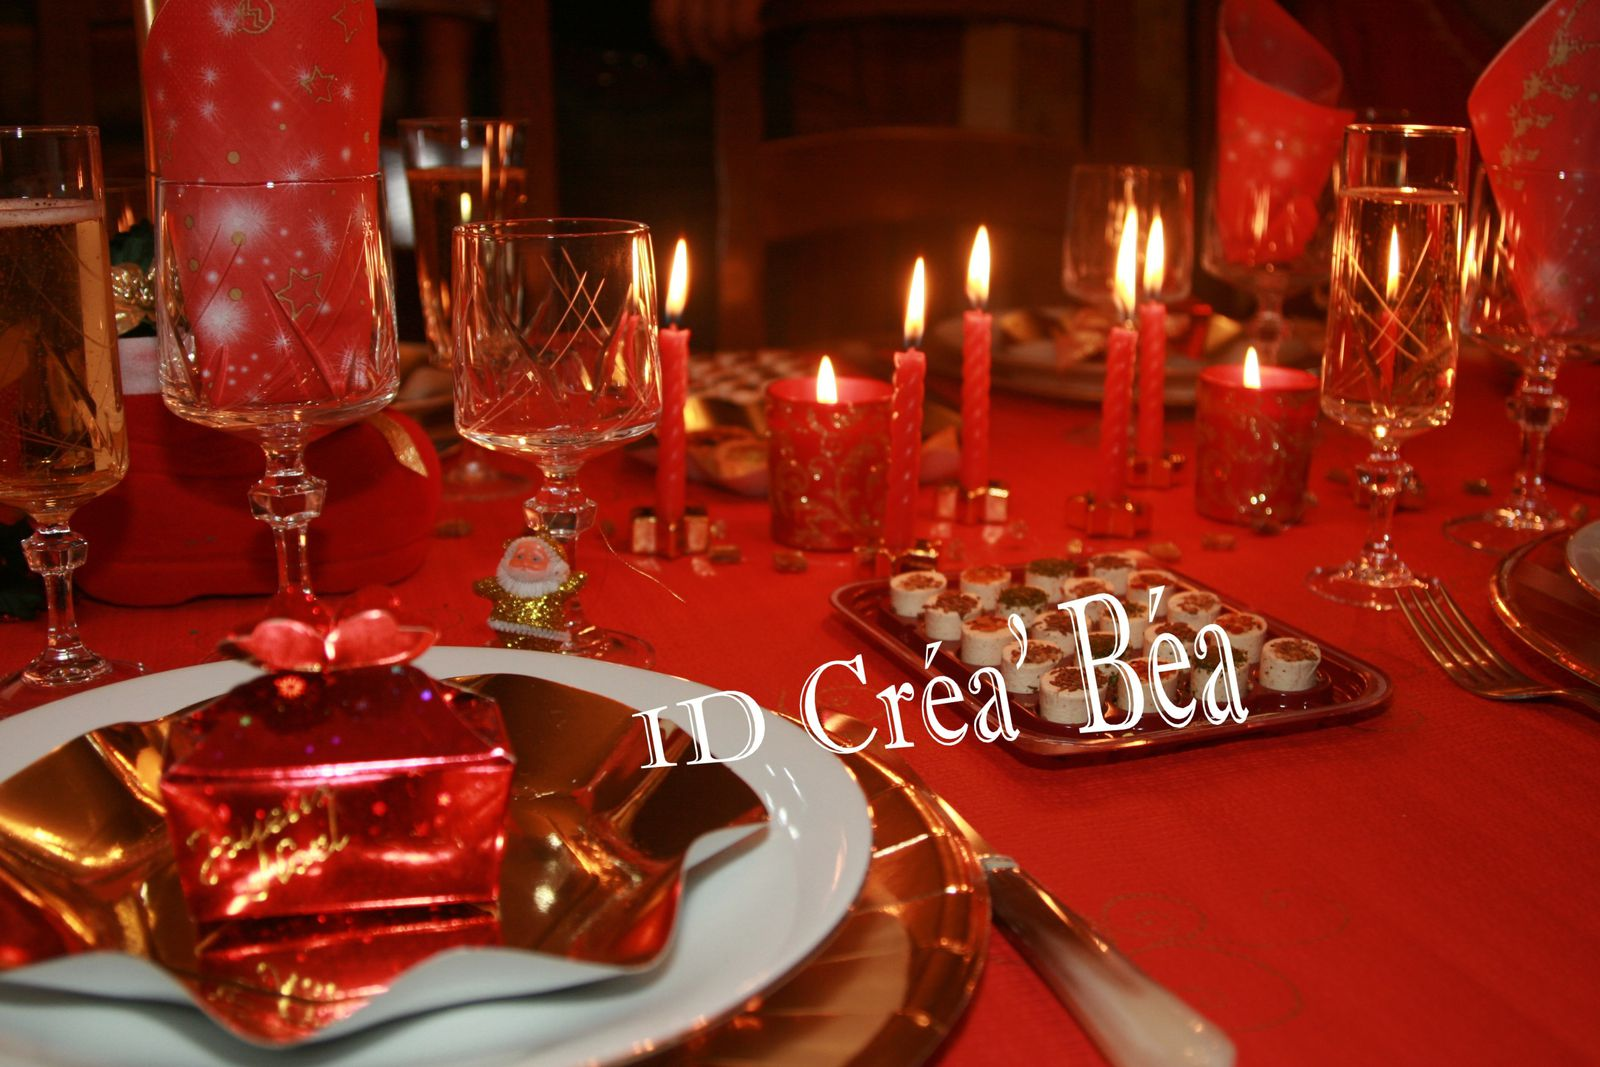 Decoration table de noel rouge et or maison design for Table noel rouge